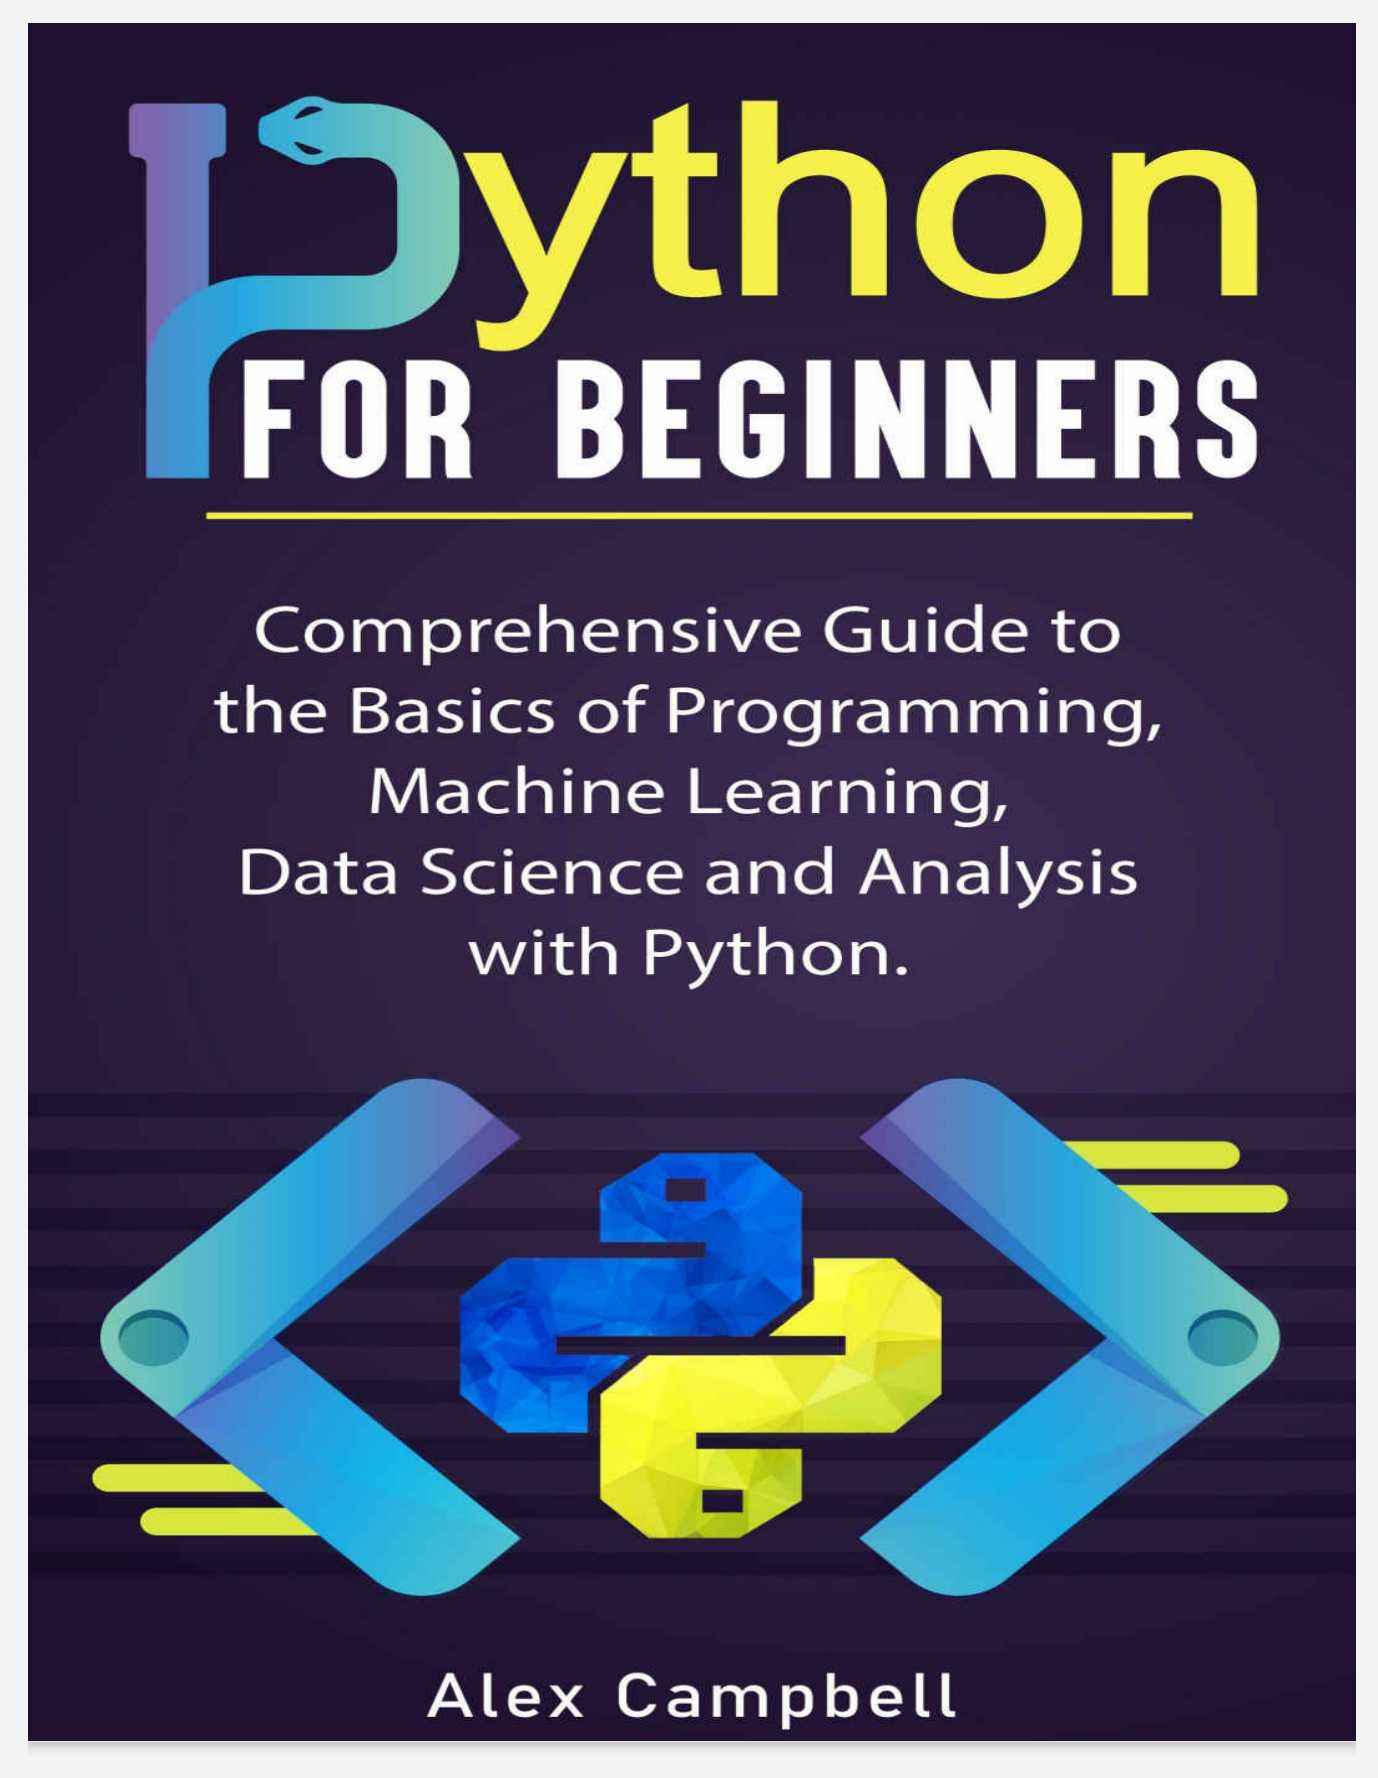 Python for Beginners: Comprehensive Guide to the Basics of Programming, Machine Learning, Data Science and Analysis with Python